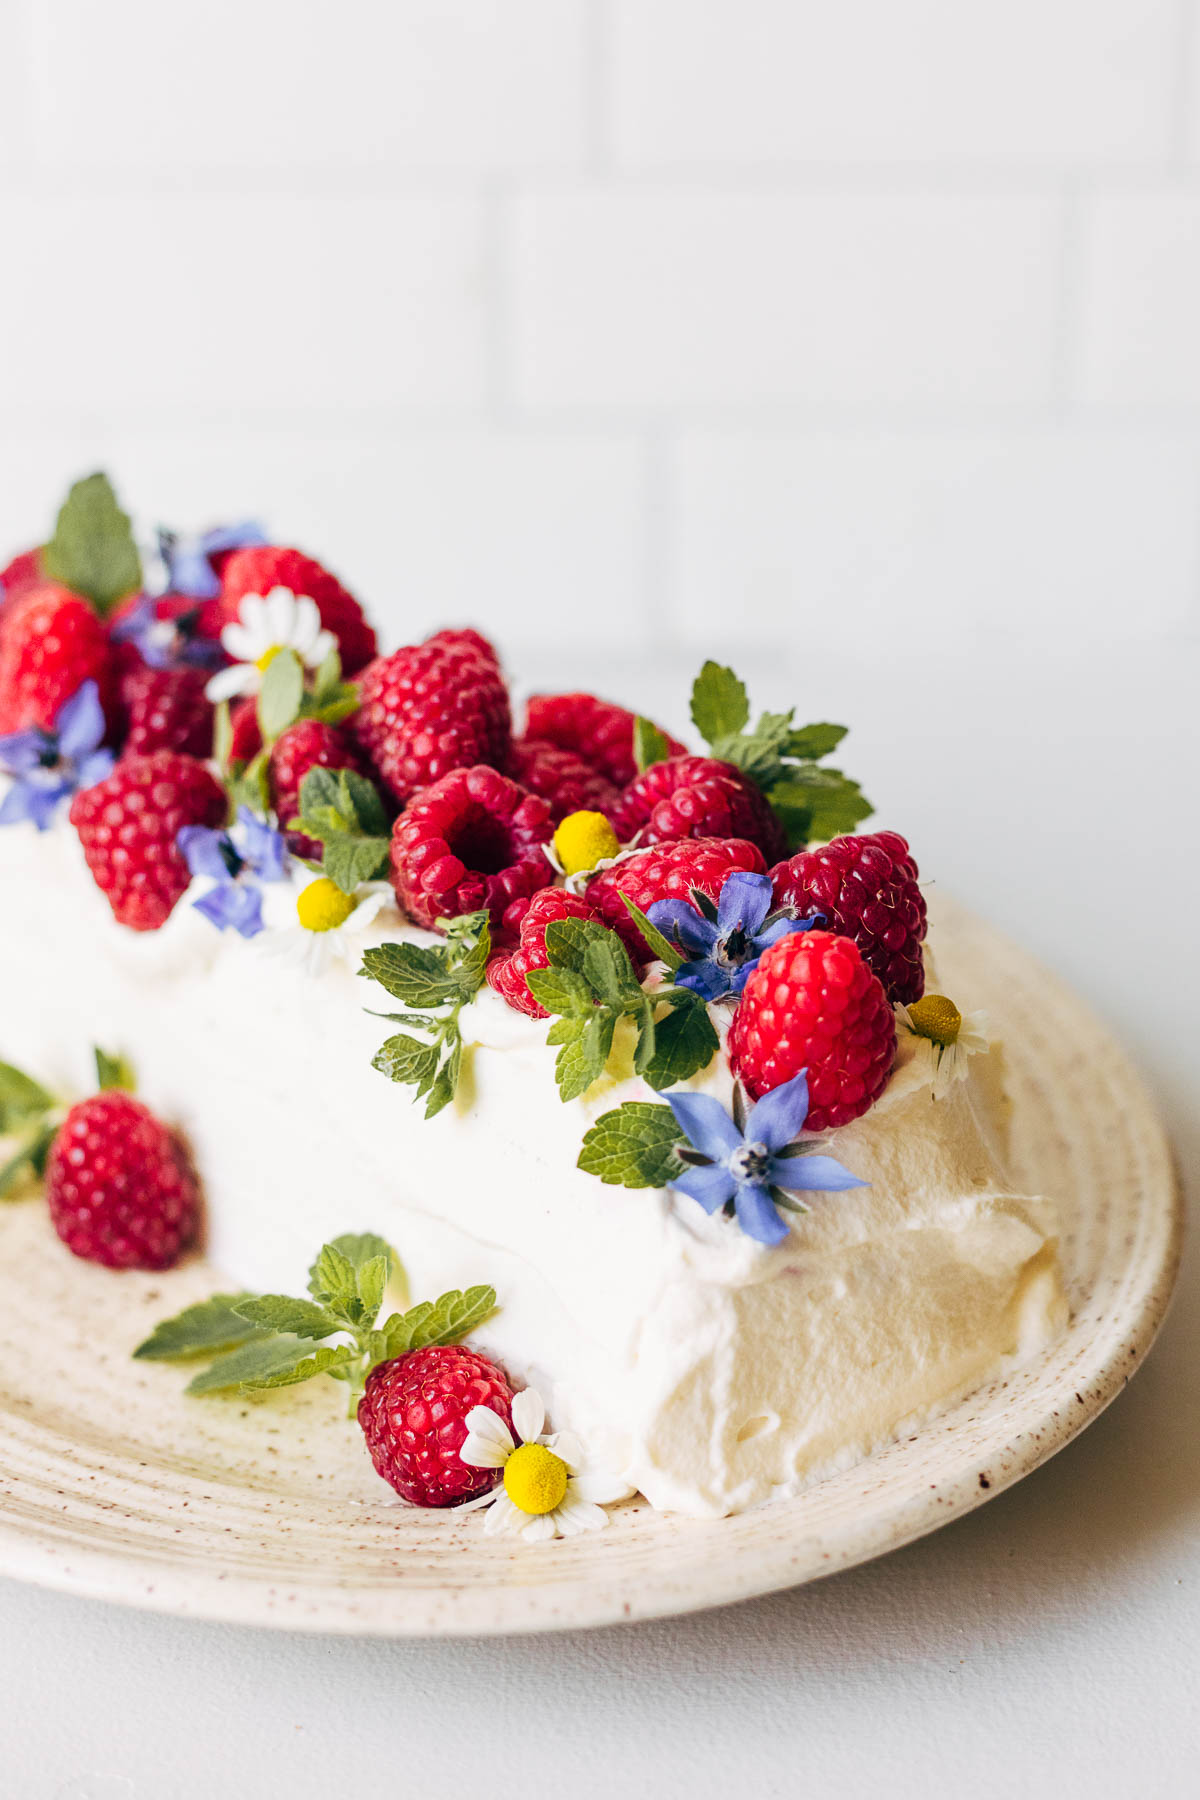 Icebox cake decorated with fresh berries and edible flowers.